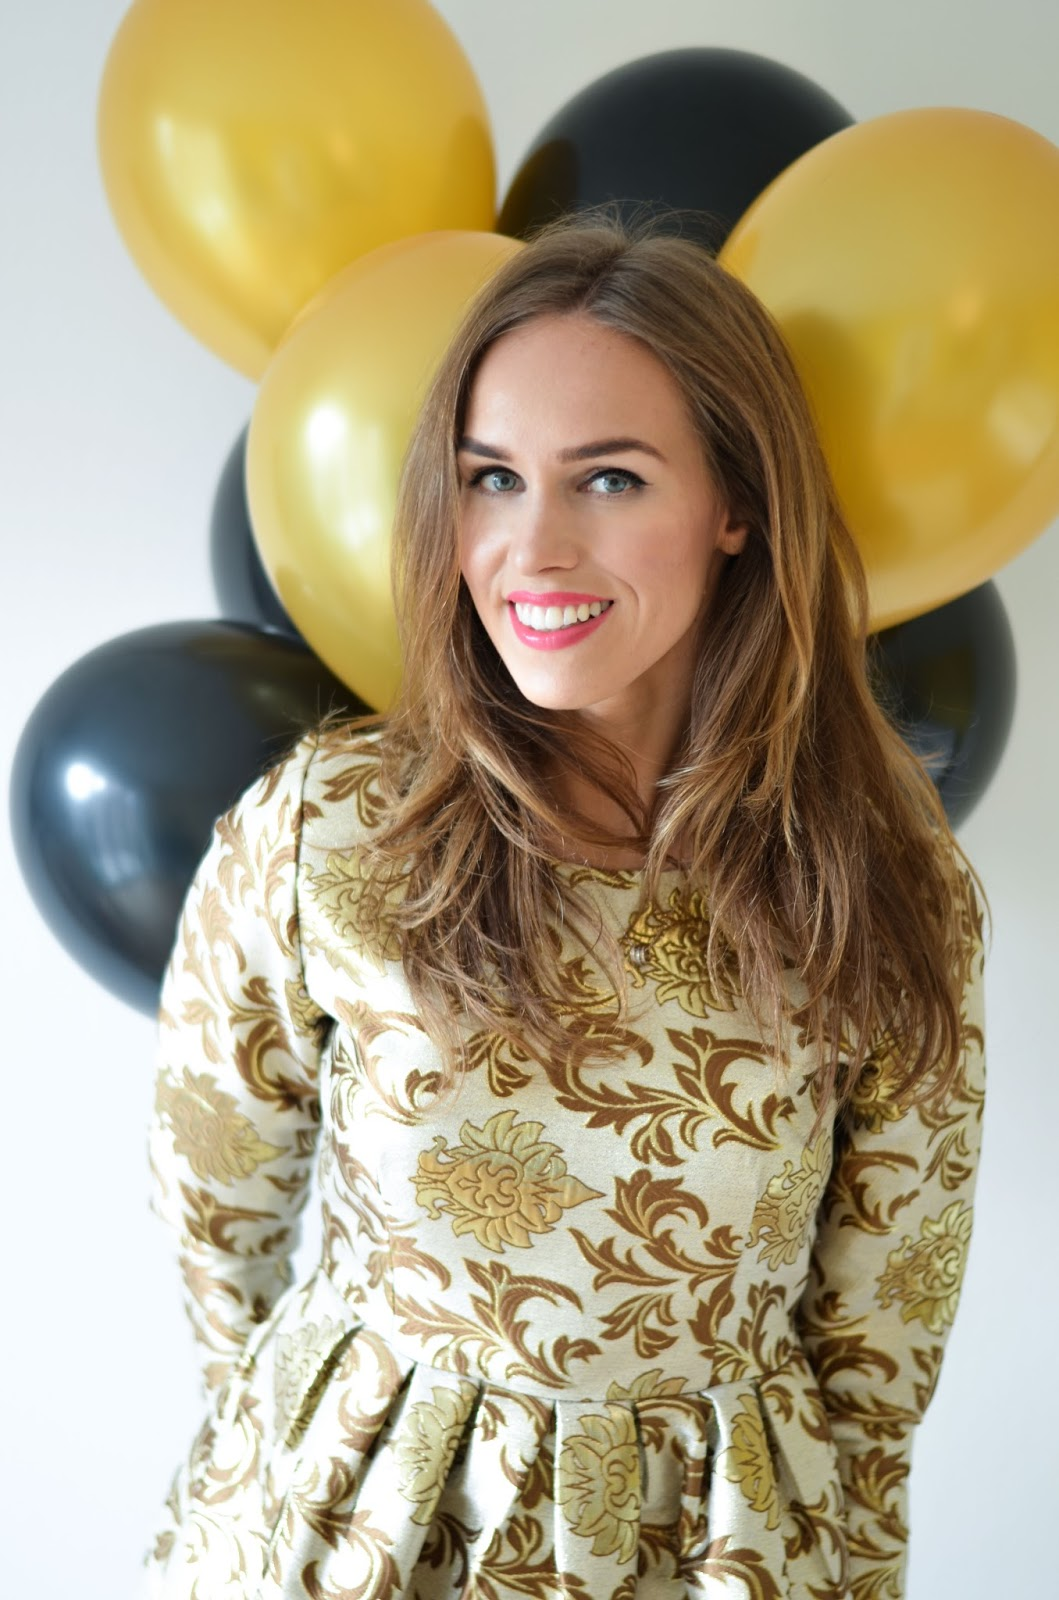 kristjaana mere 27th birthday golden dress balloons